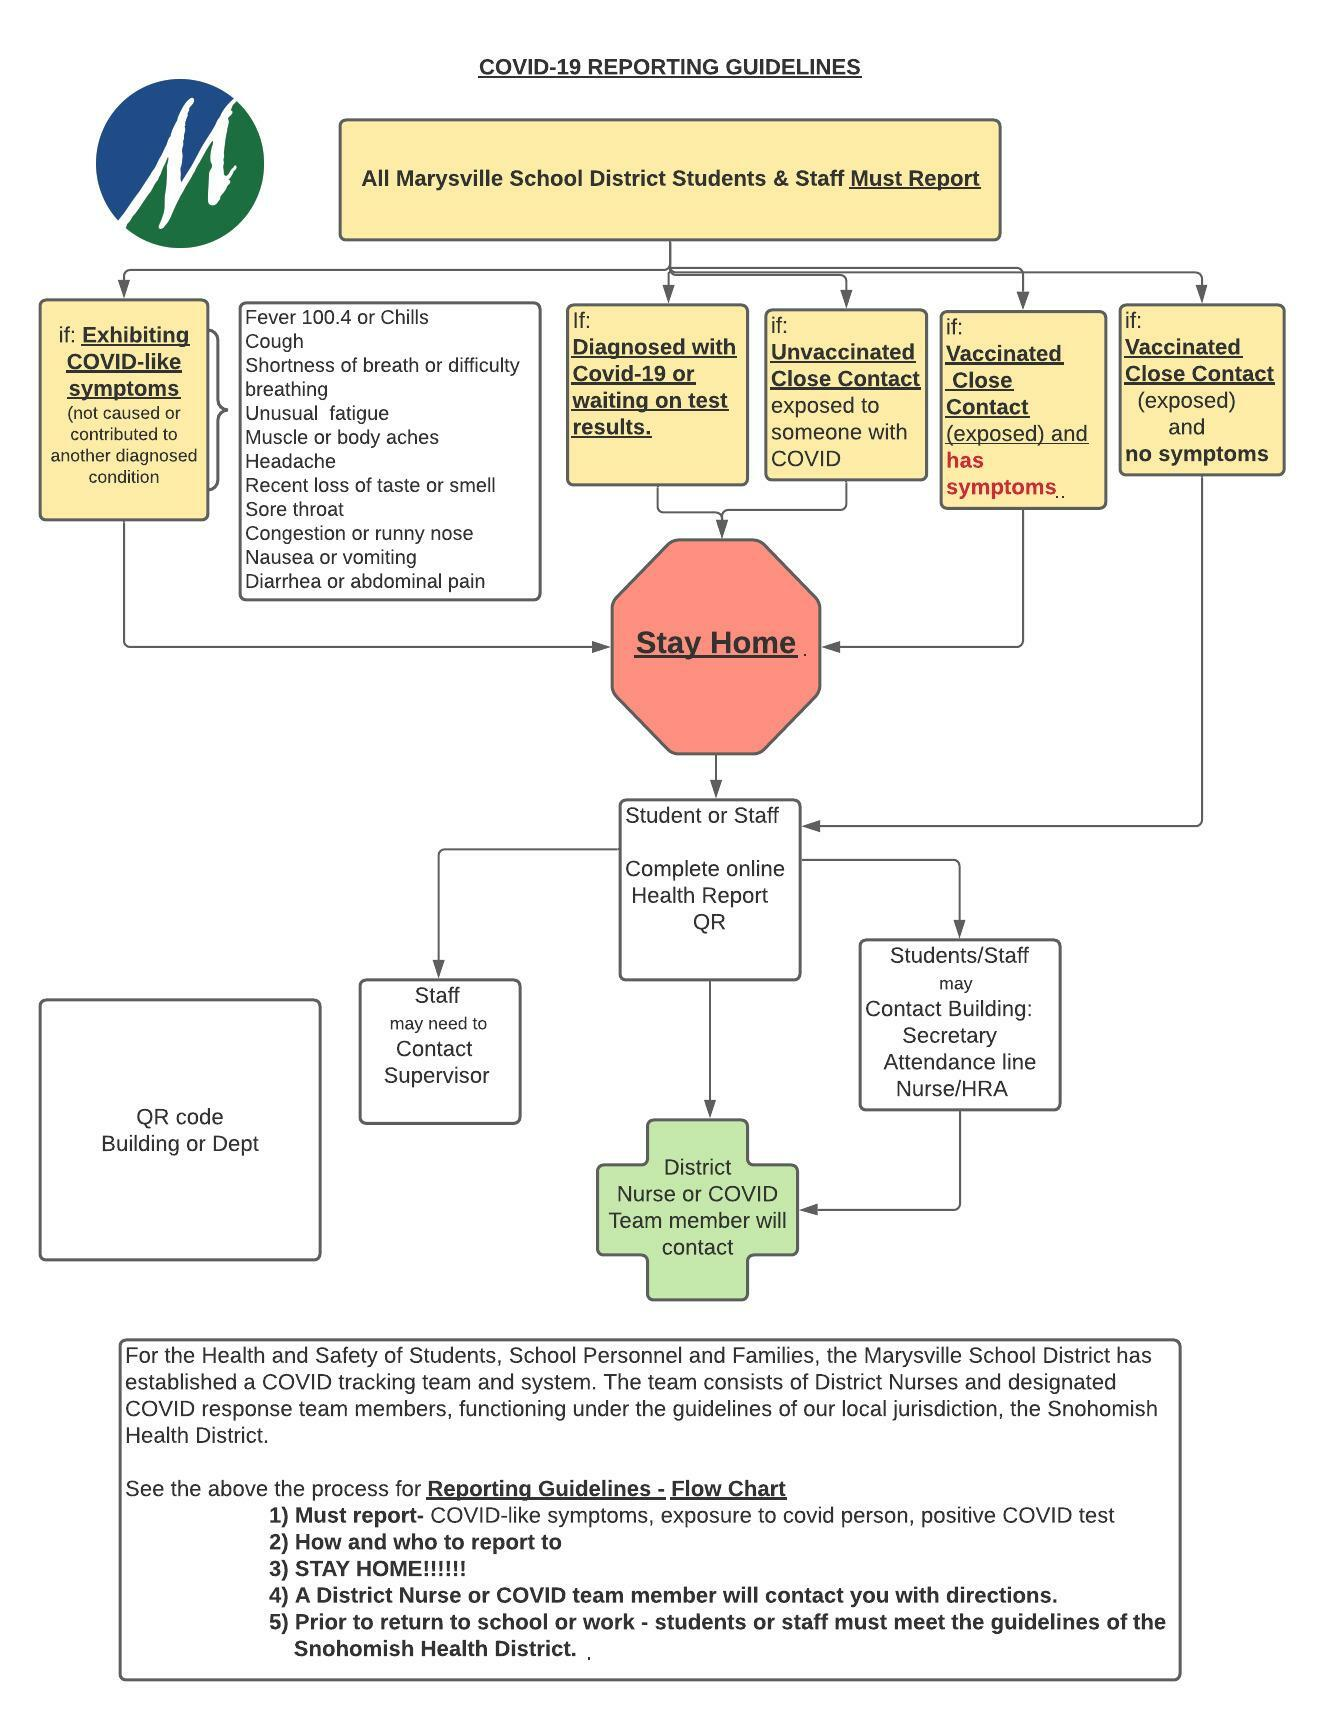 COVID-19 Reporting Flow Chart